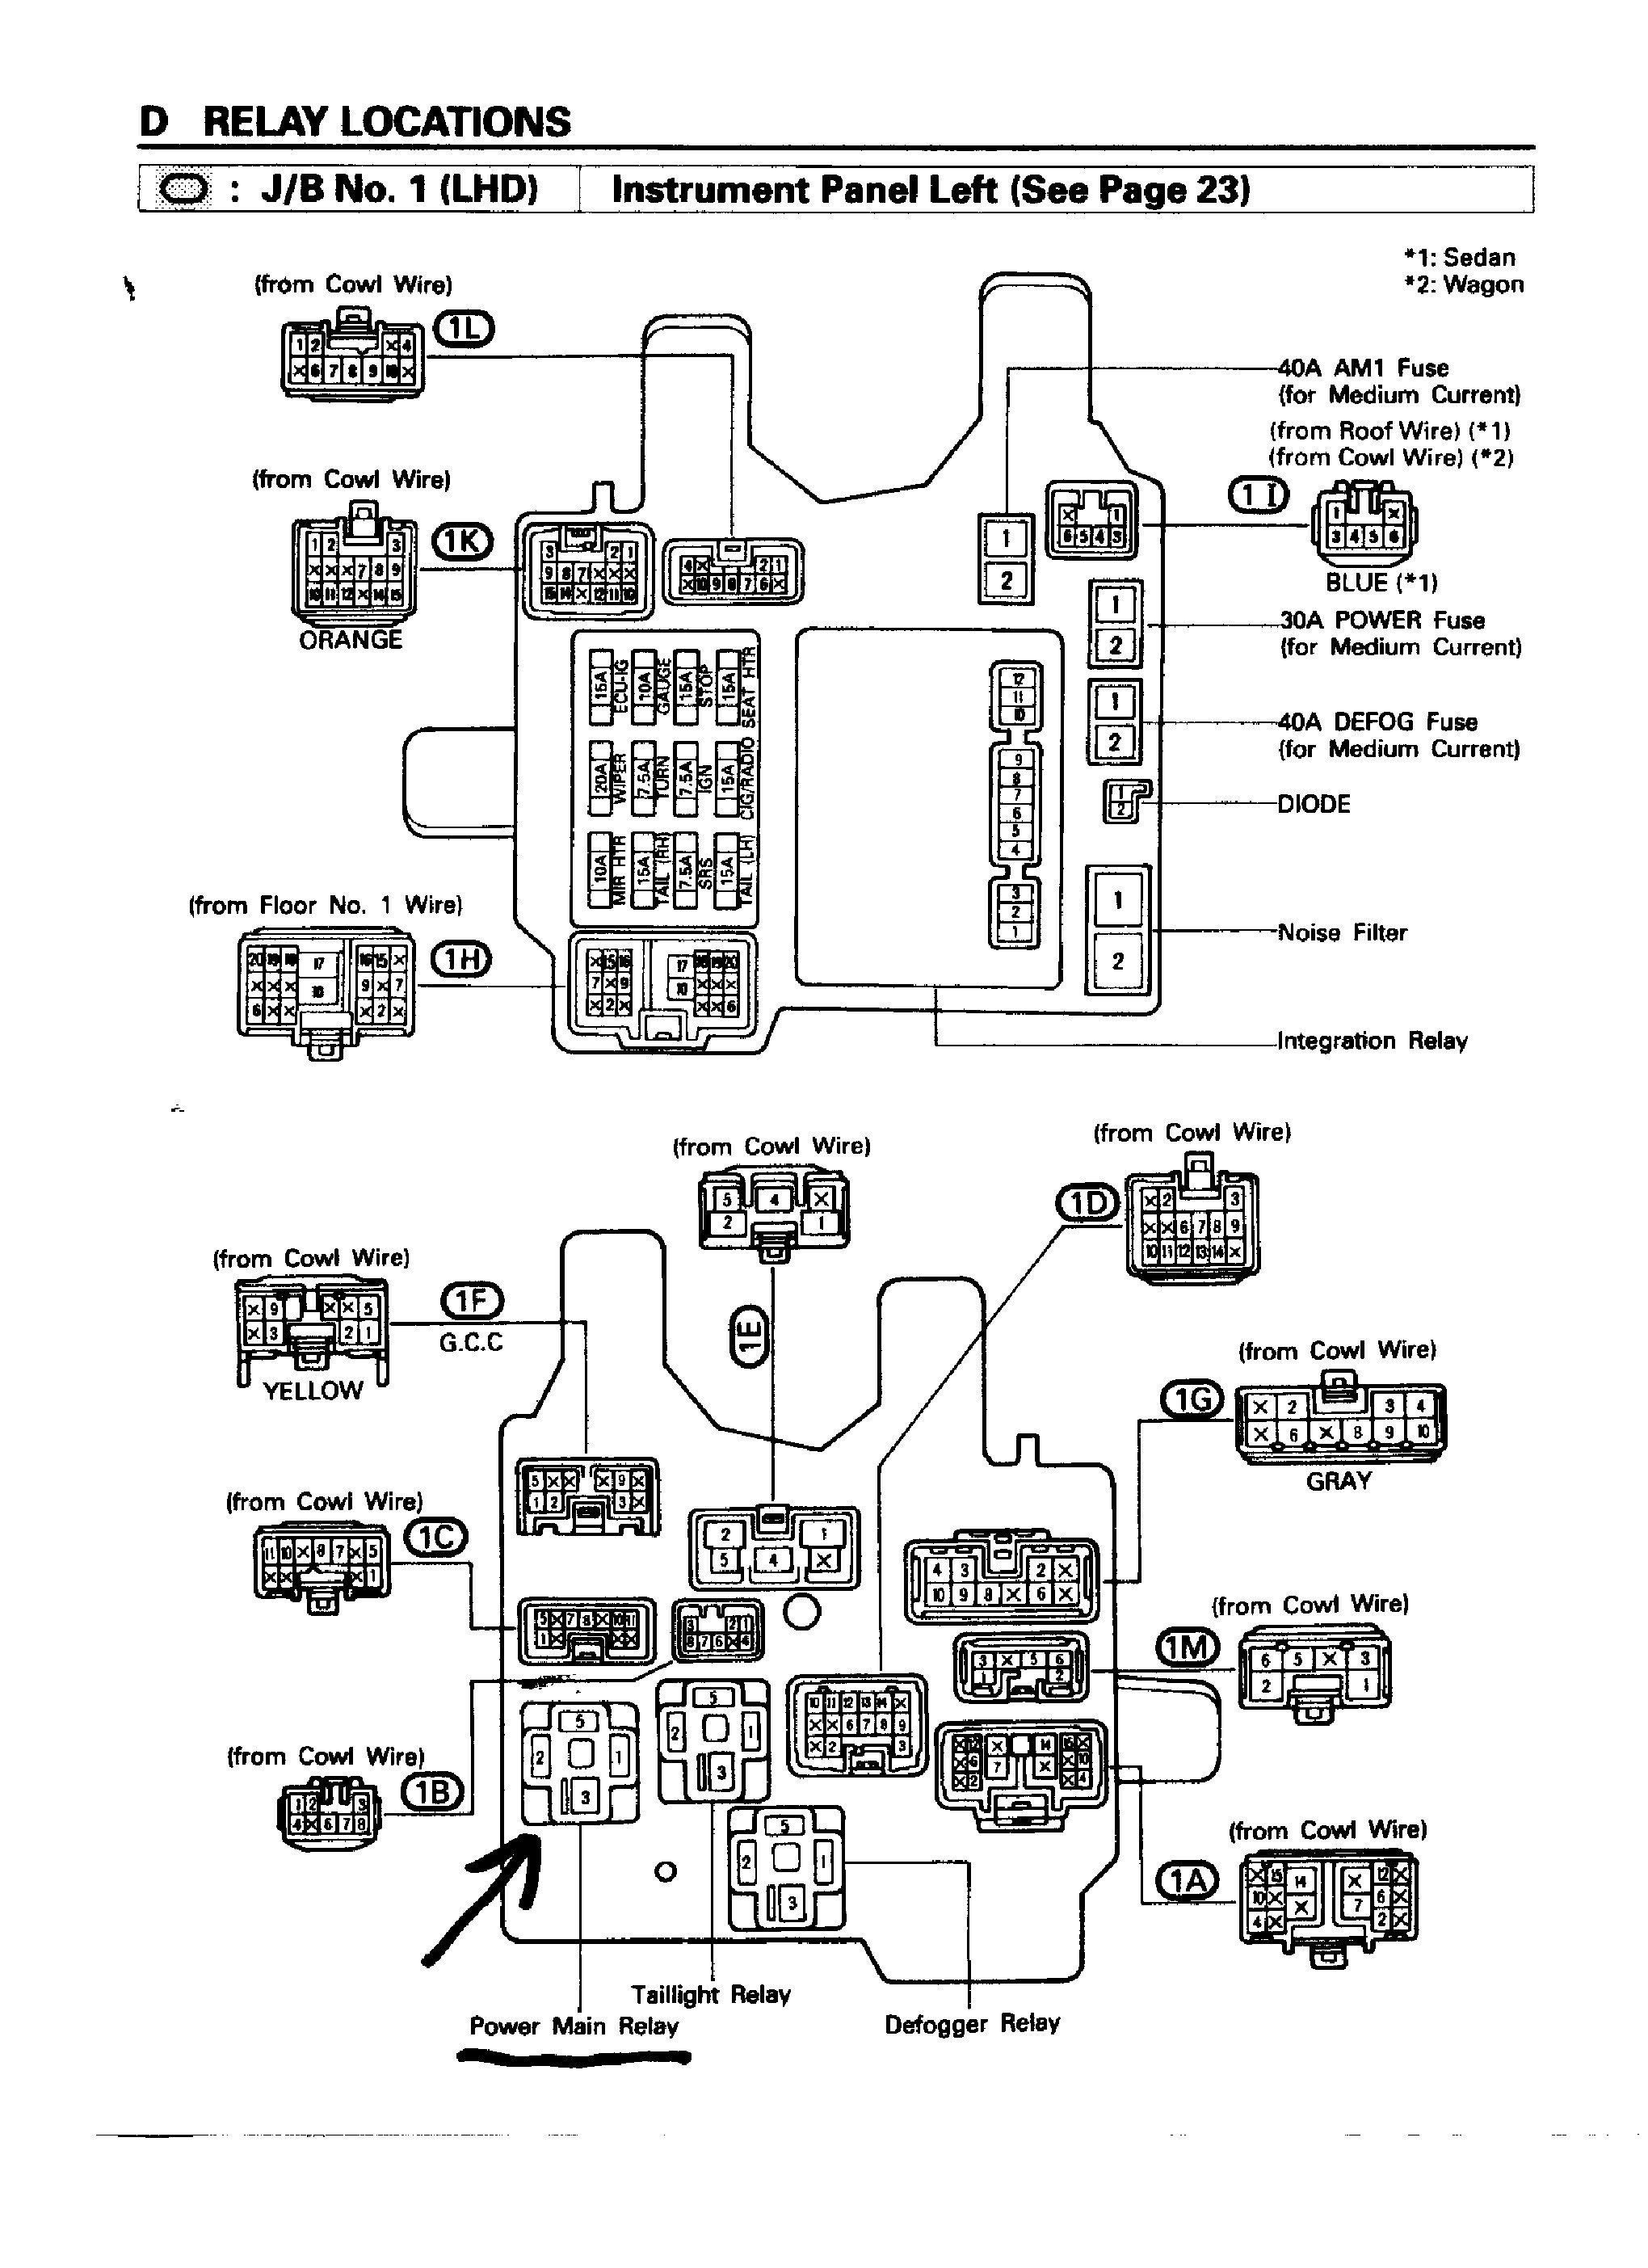 Schematic Diagram For Toyota Corolla